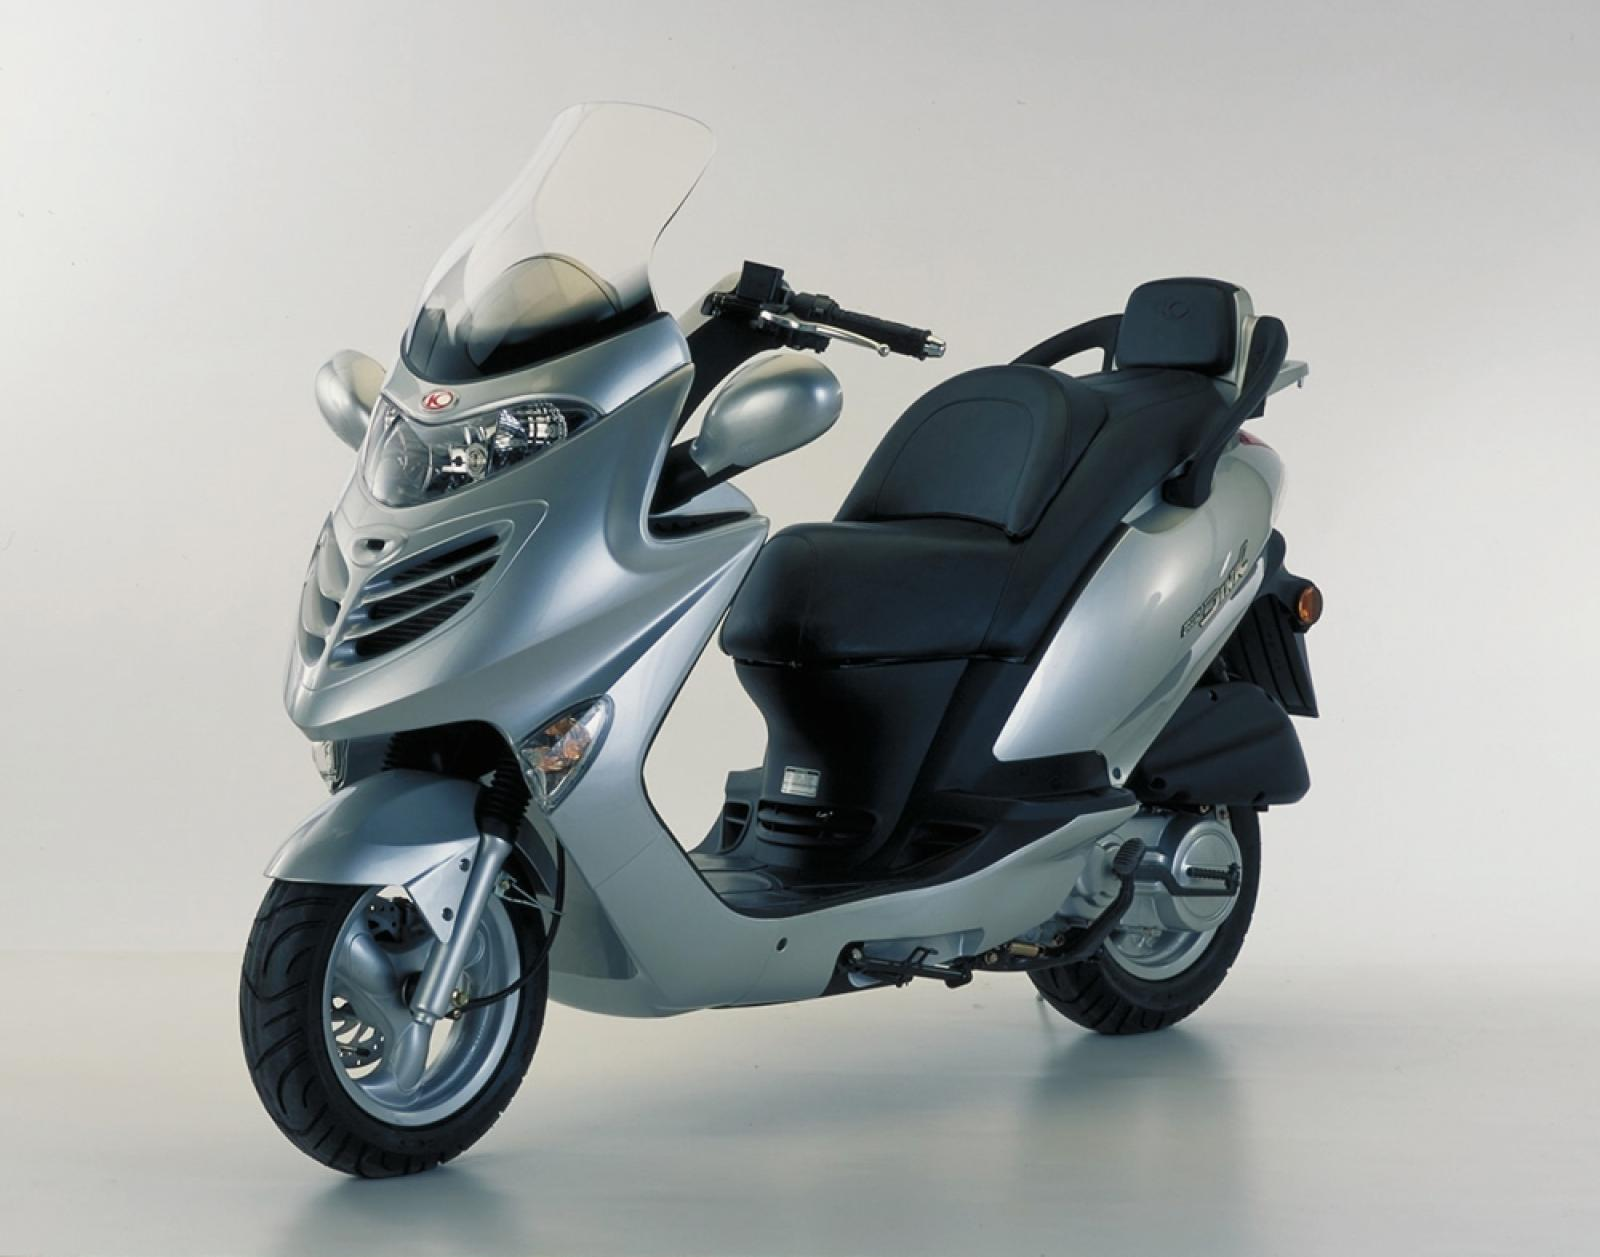 2007 Kymco Bet and Win 150 #6